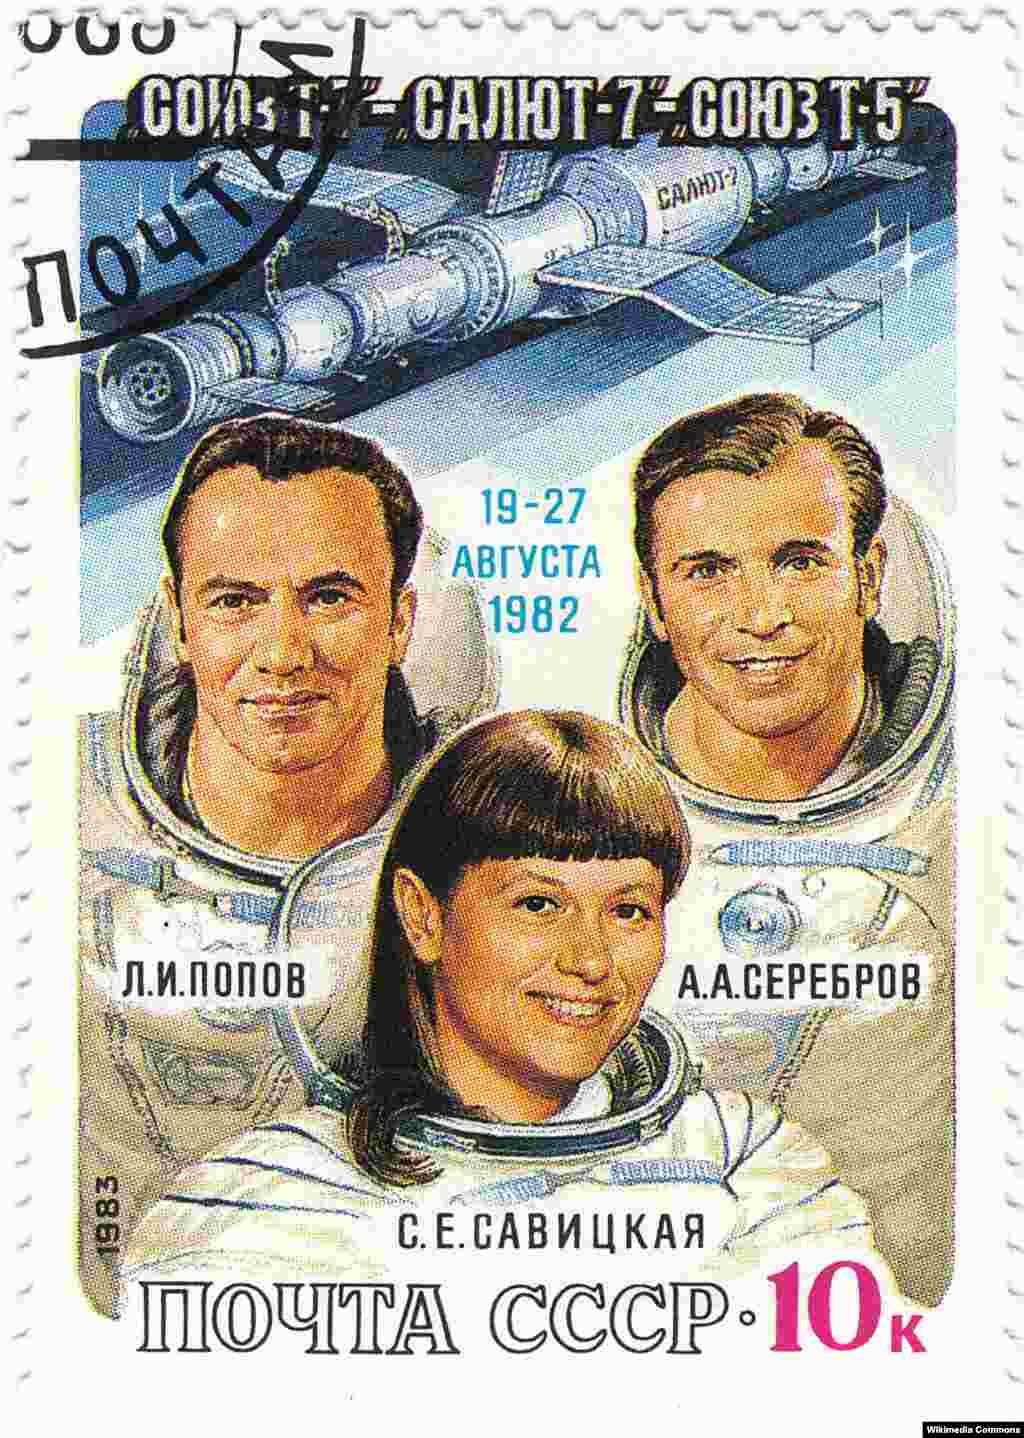 Nineteen years after Tereshkova, Soviet cosmonaut Svetlana Savitskaya (center) became the second woman in space, in 1982, and the first woman to perform a space walk, in 1984.